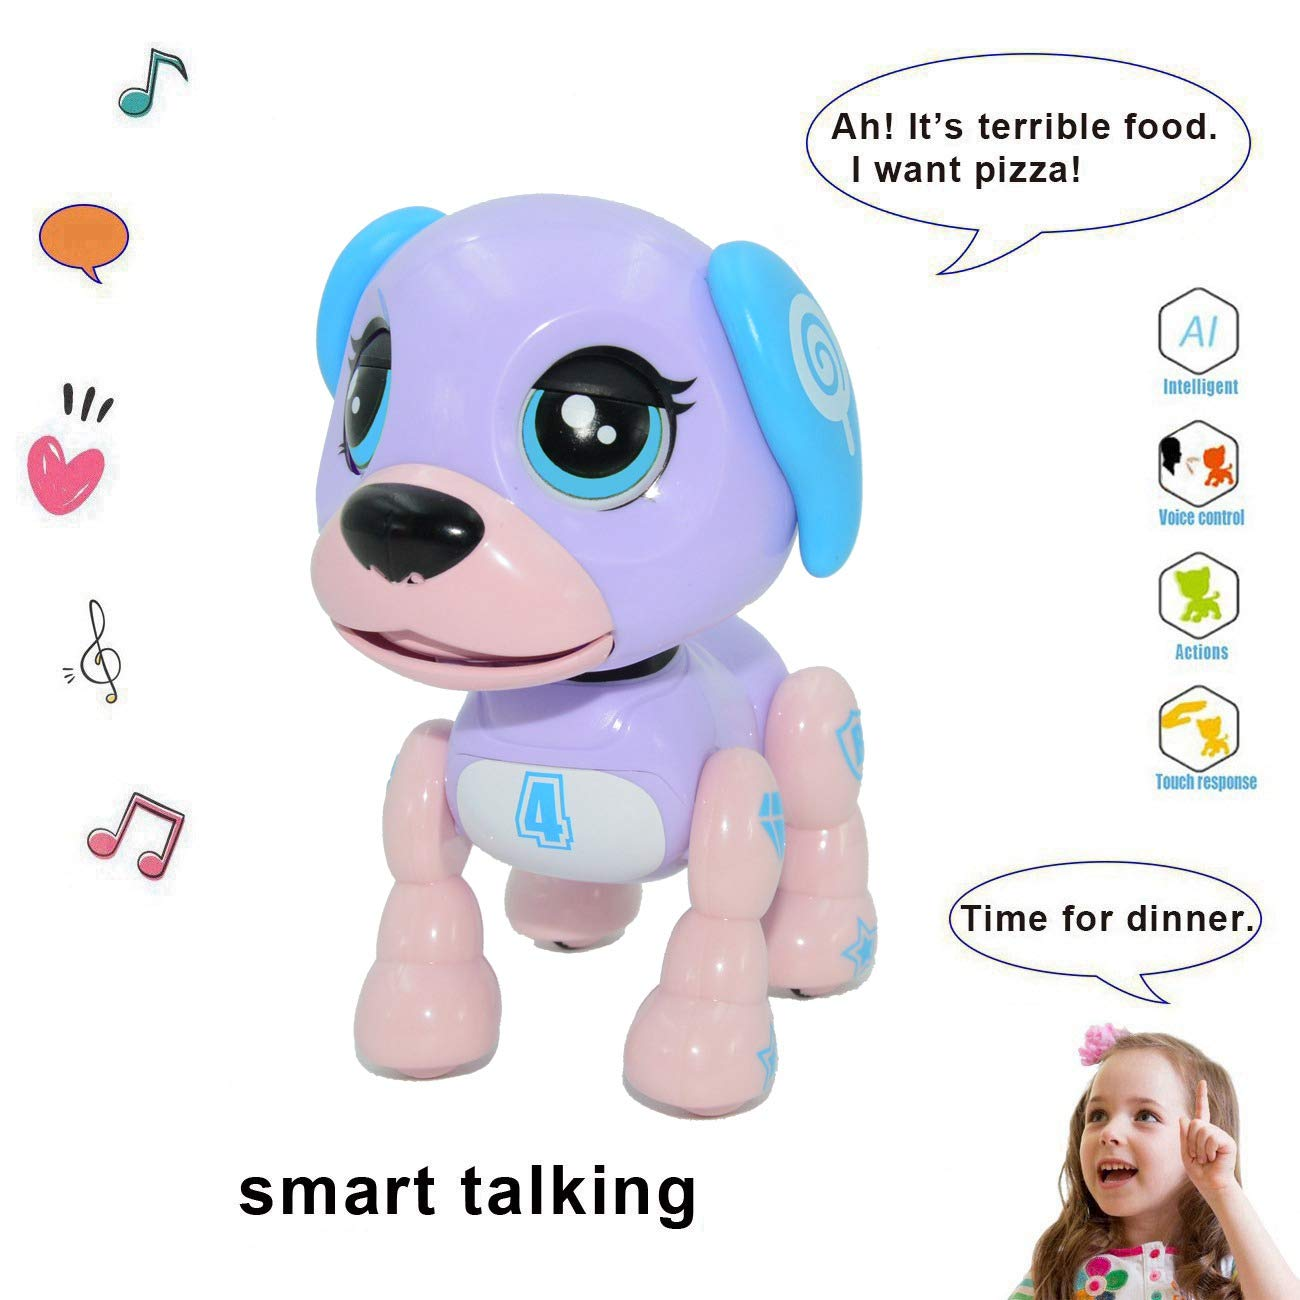 amdohai Interactive Puppy - Electronic Pet Toy, Smart Robot Dog for Age 3 4 5 6 7 8 Year-Old Children, Gifts Idea for Kids ● Voice Control&Intelligent Talking (Purple)